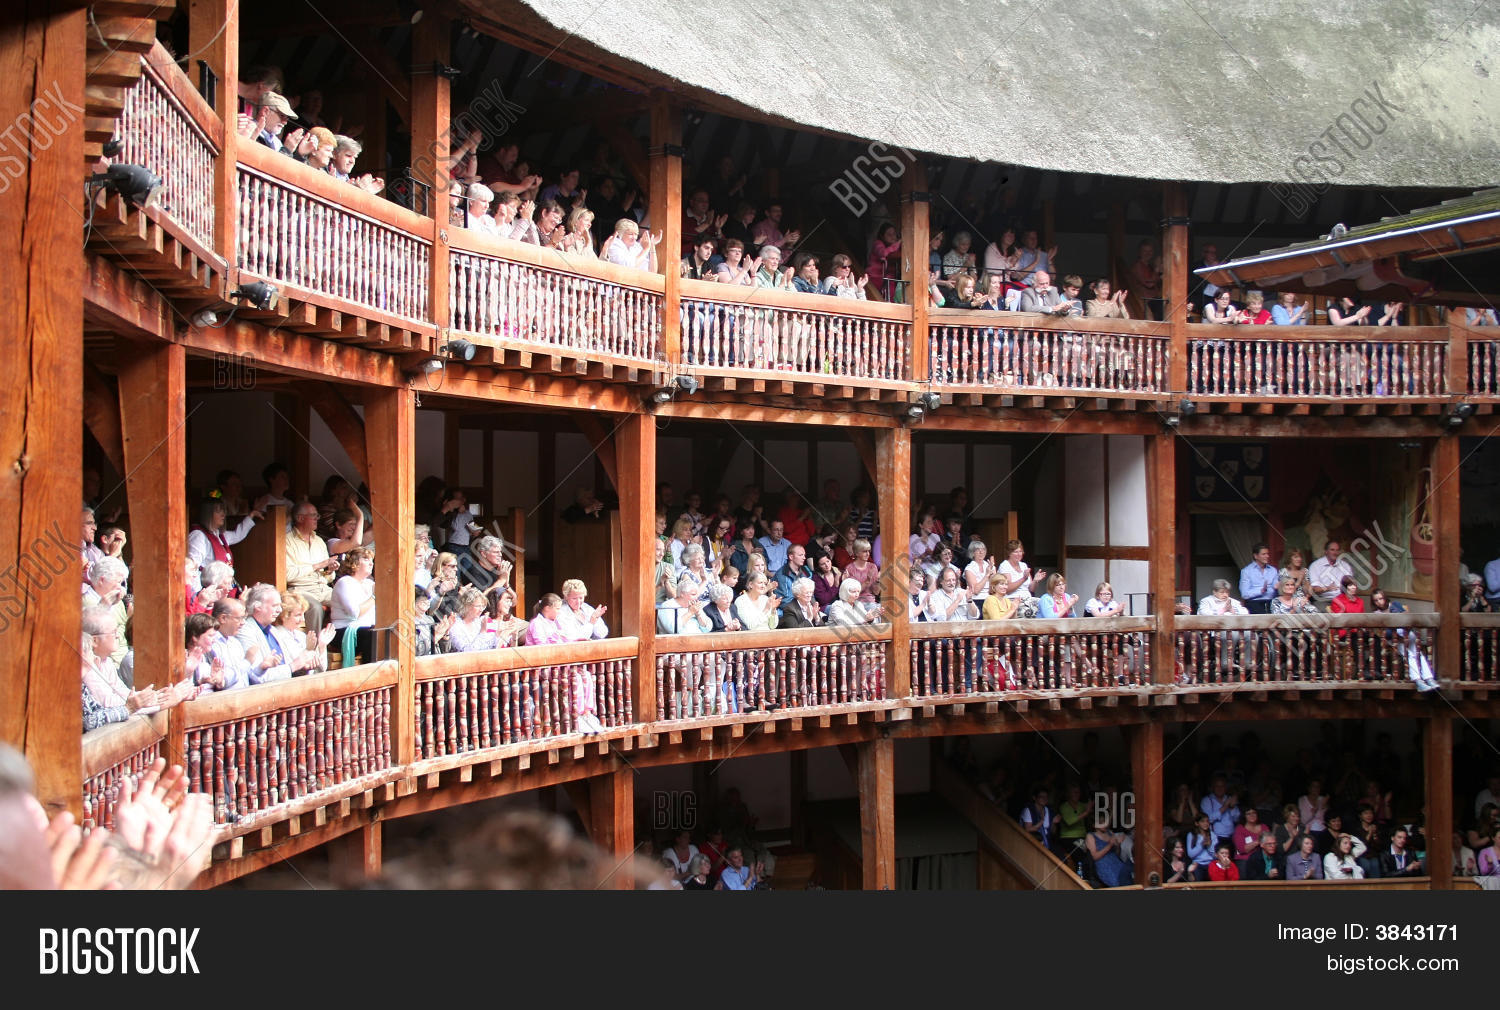 elizabethan theatre audience - photo #29